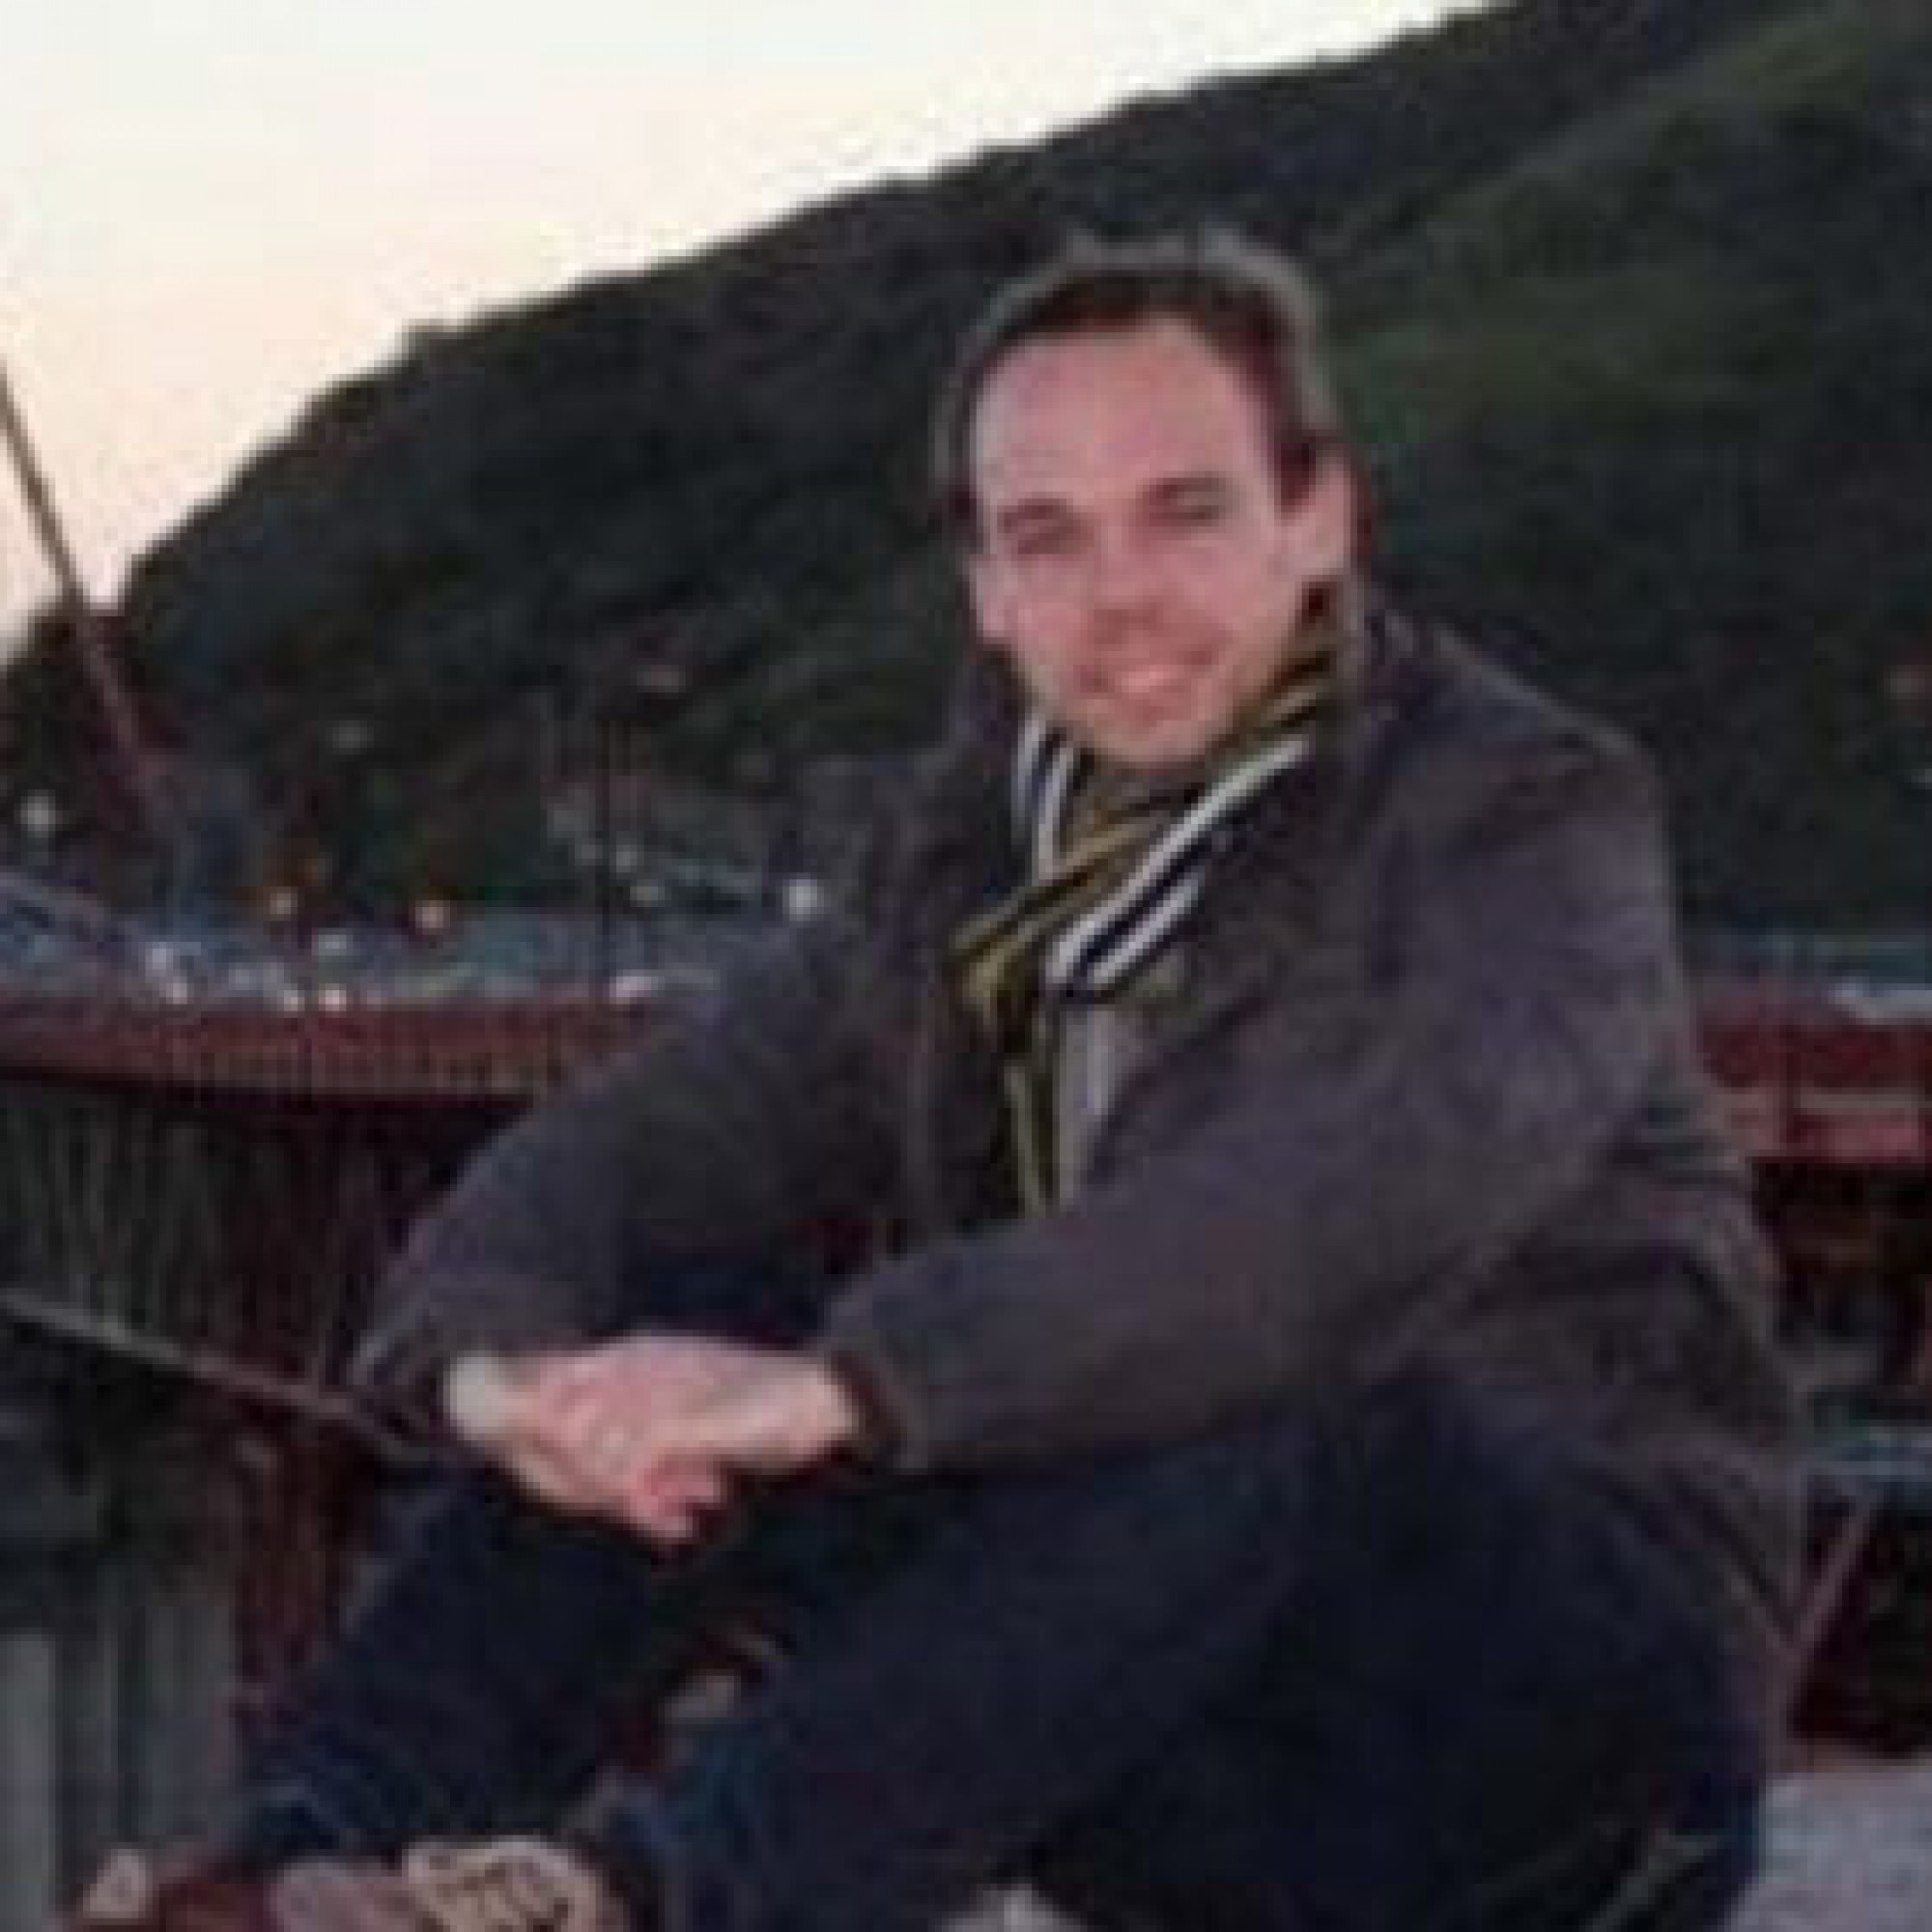 Doctor referred Germanwings co-pilot to psychiatric clinic two weeks before crash